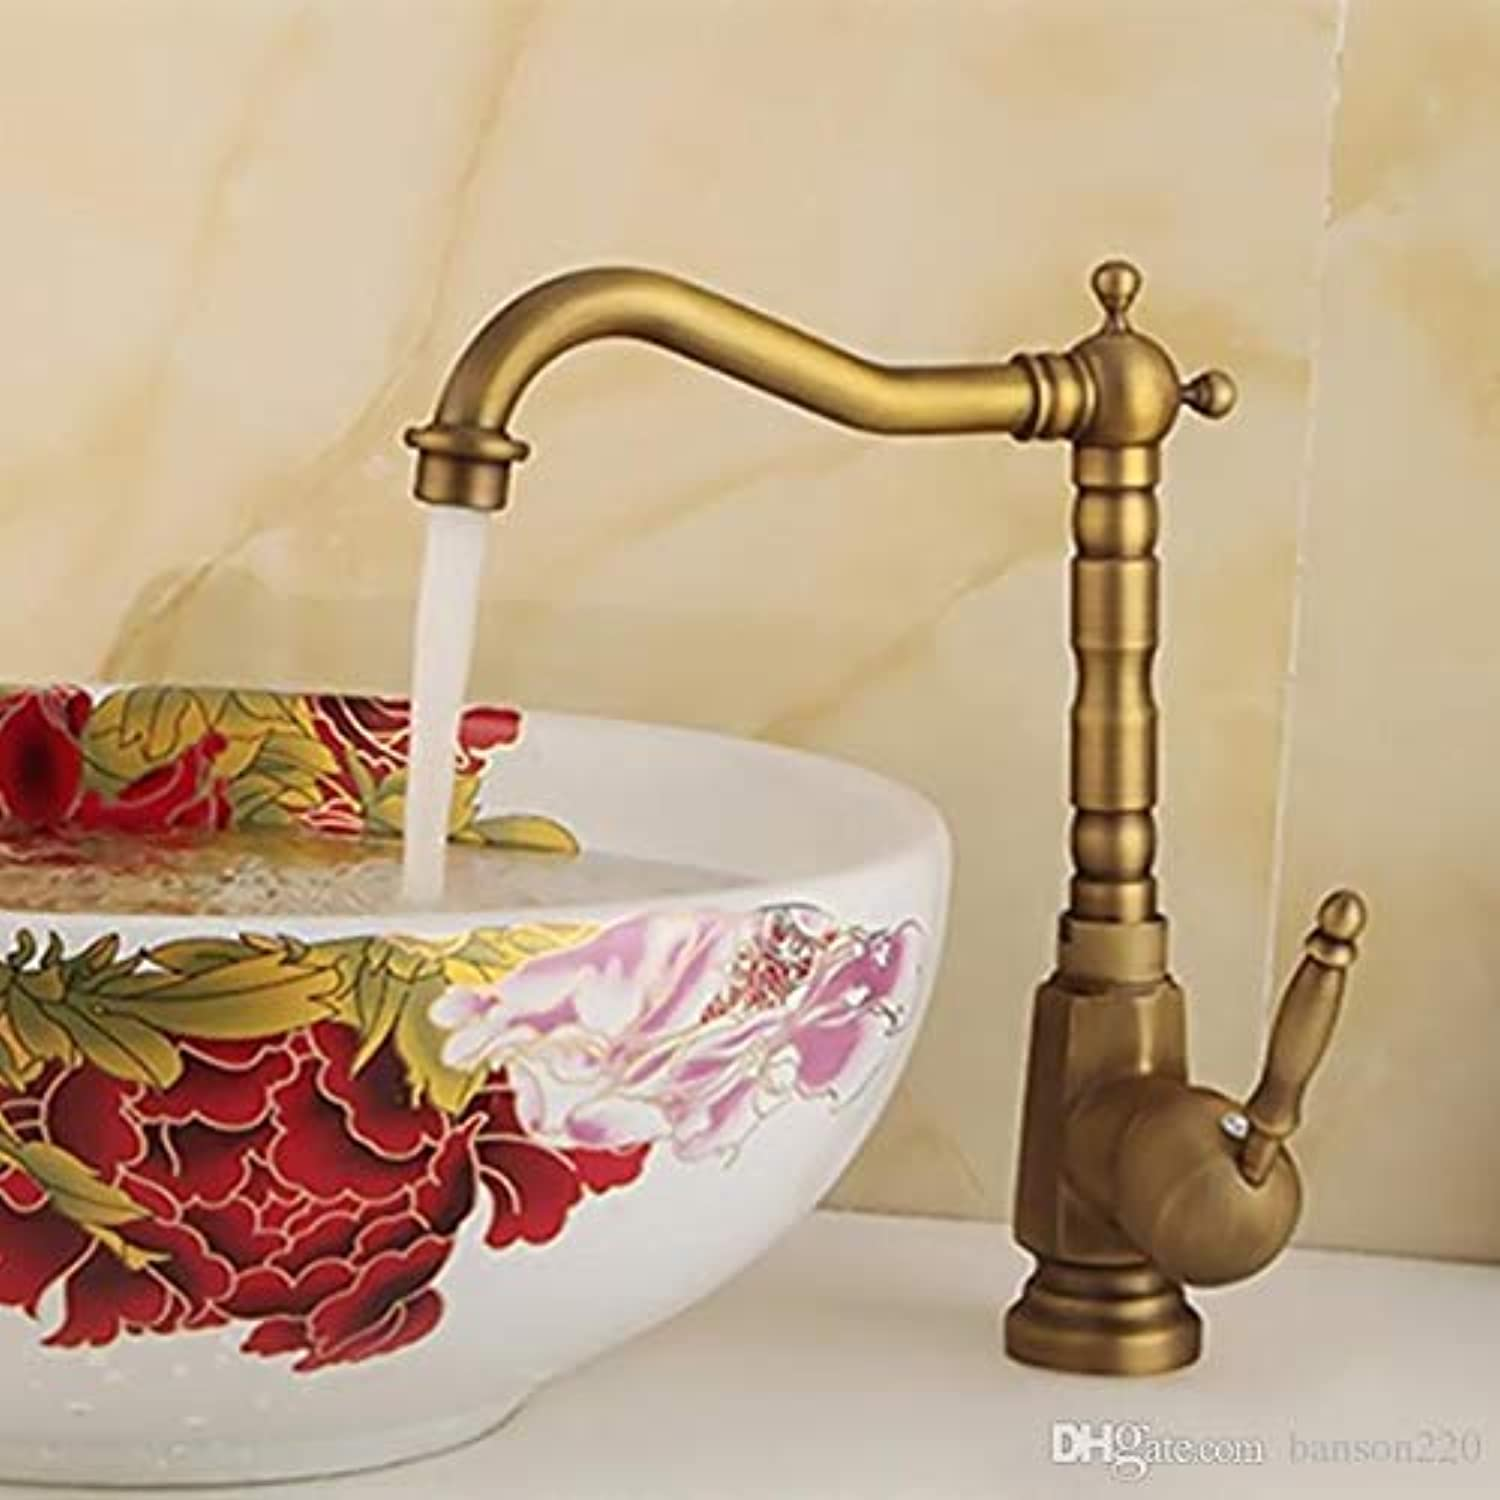 Oudan Solid Brass Sink Faucet with Single Handle Single Hole Antique Sink Faucet (color   -, Size   -)